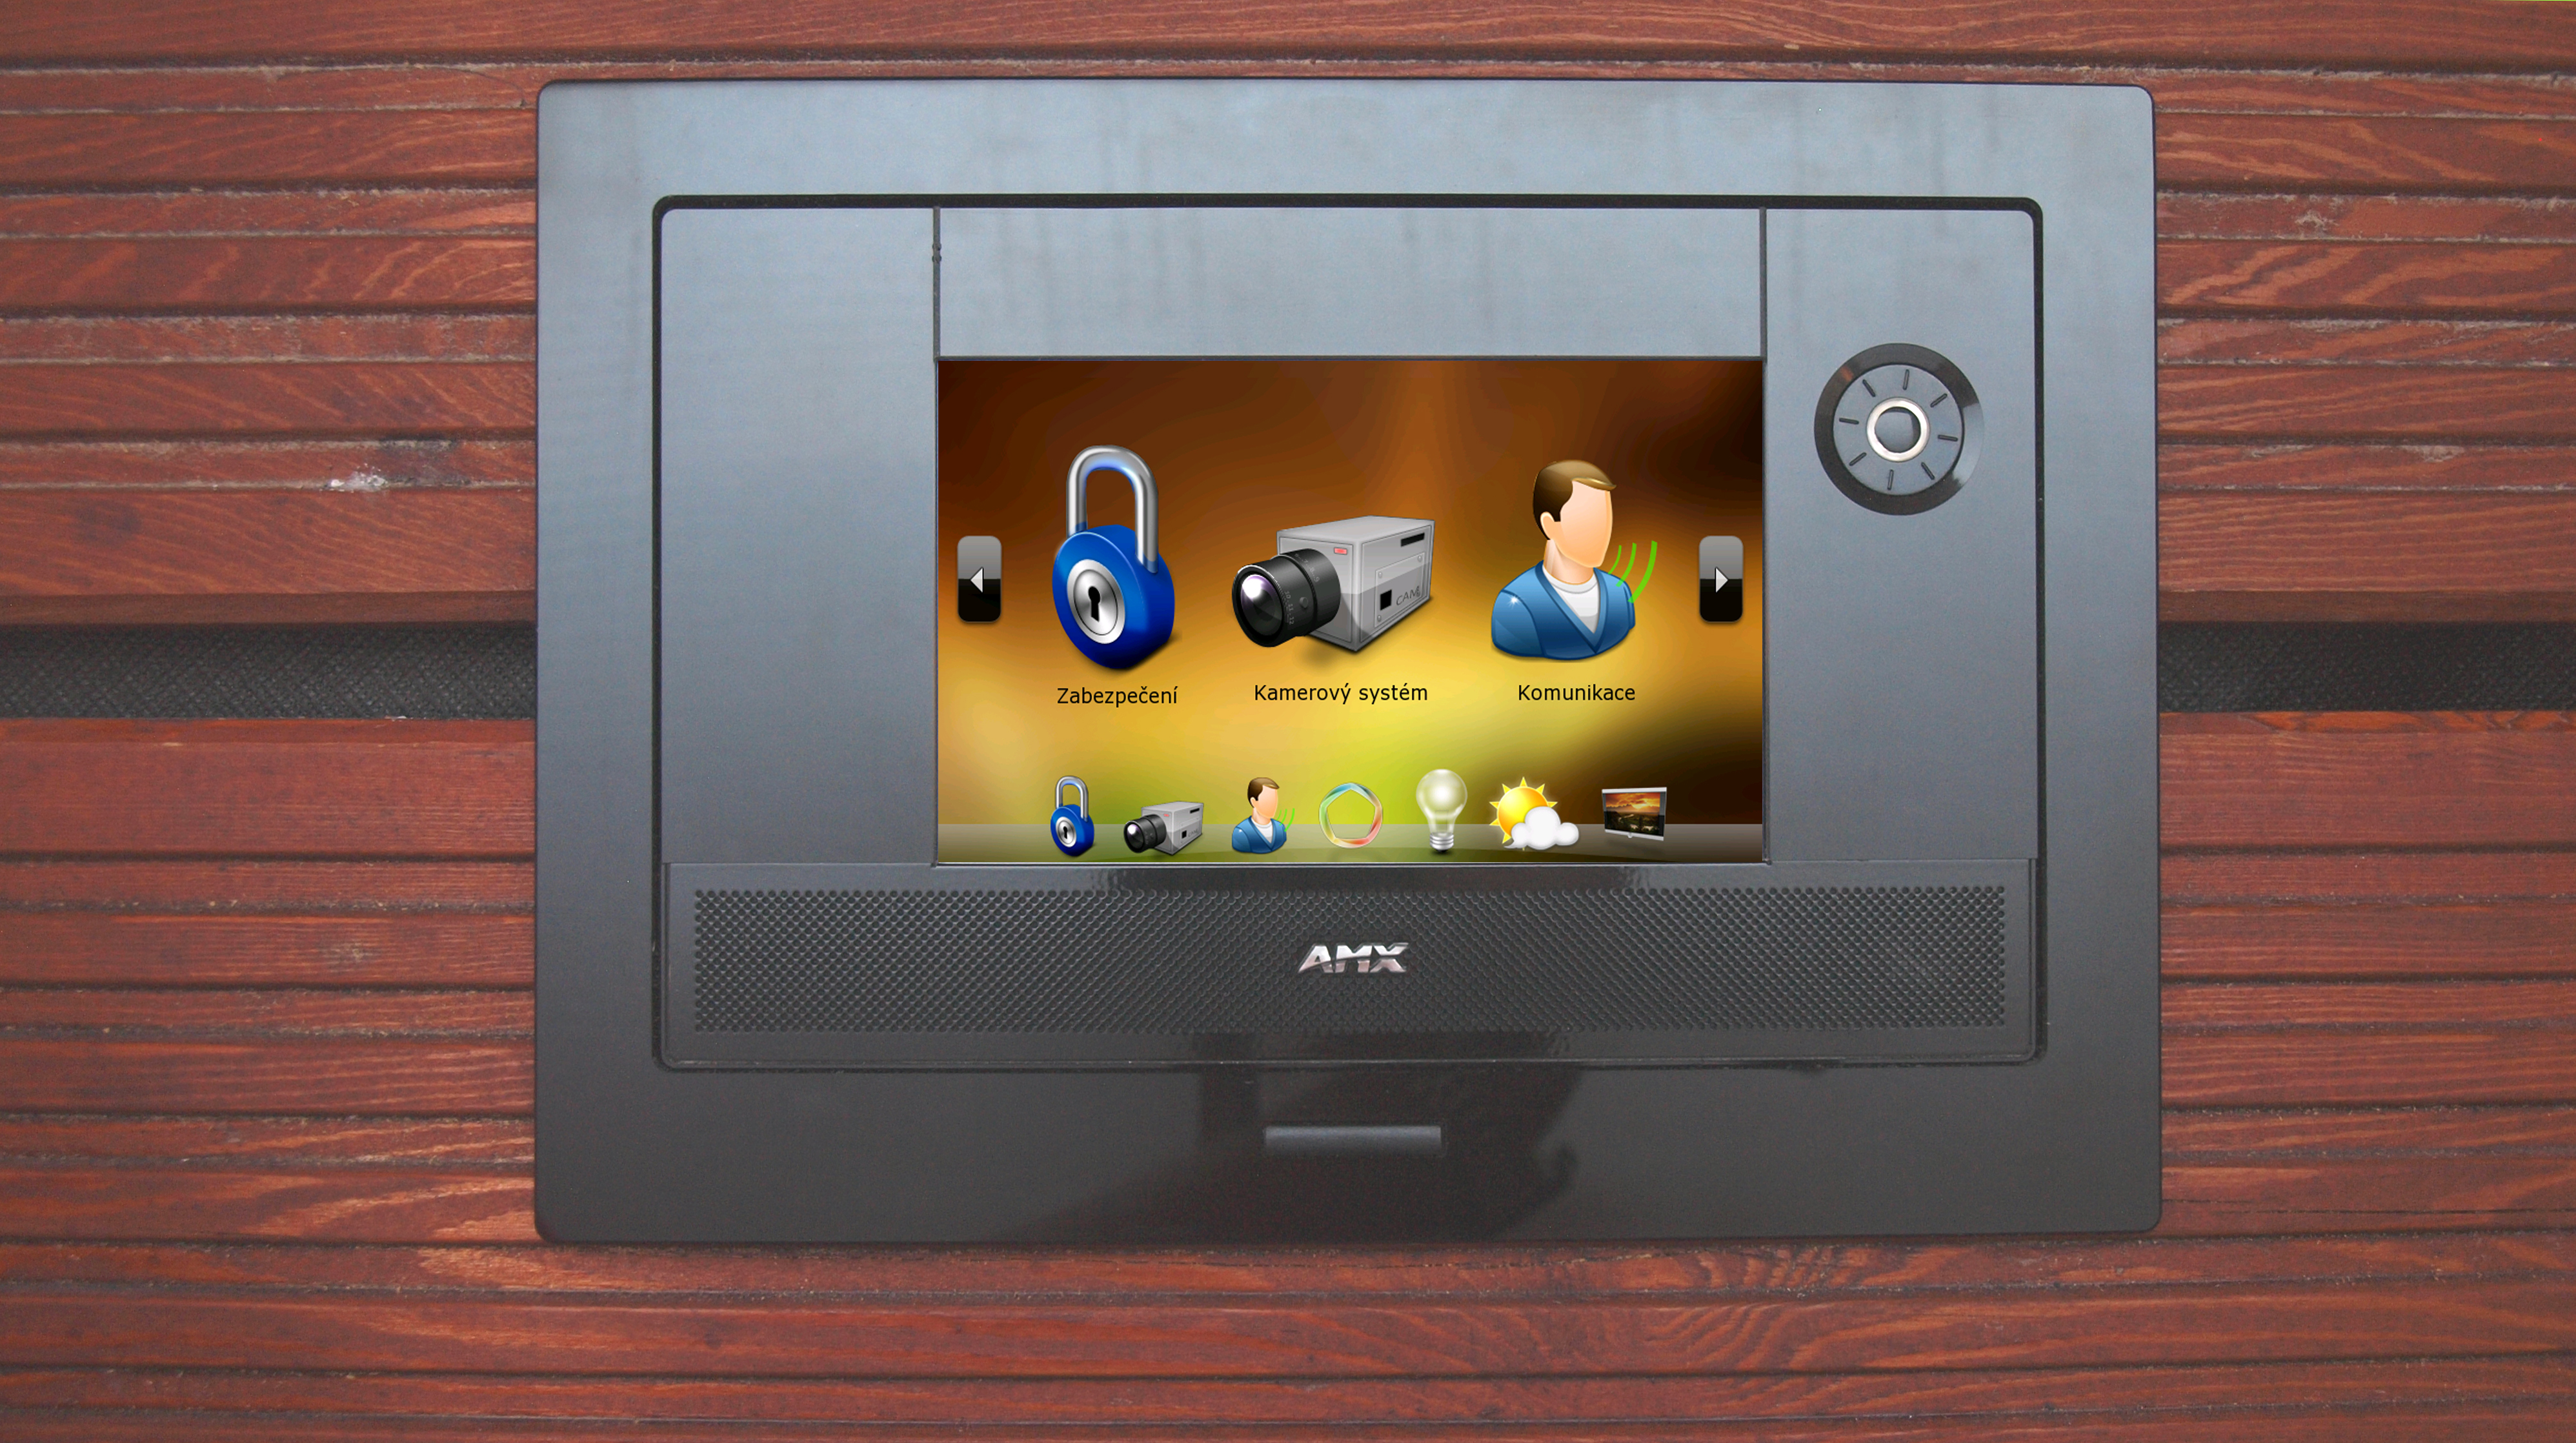 A photo of a home automation controller